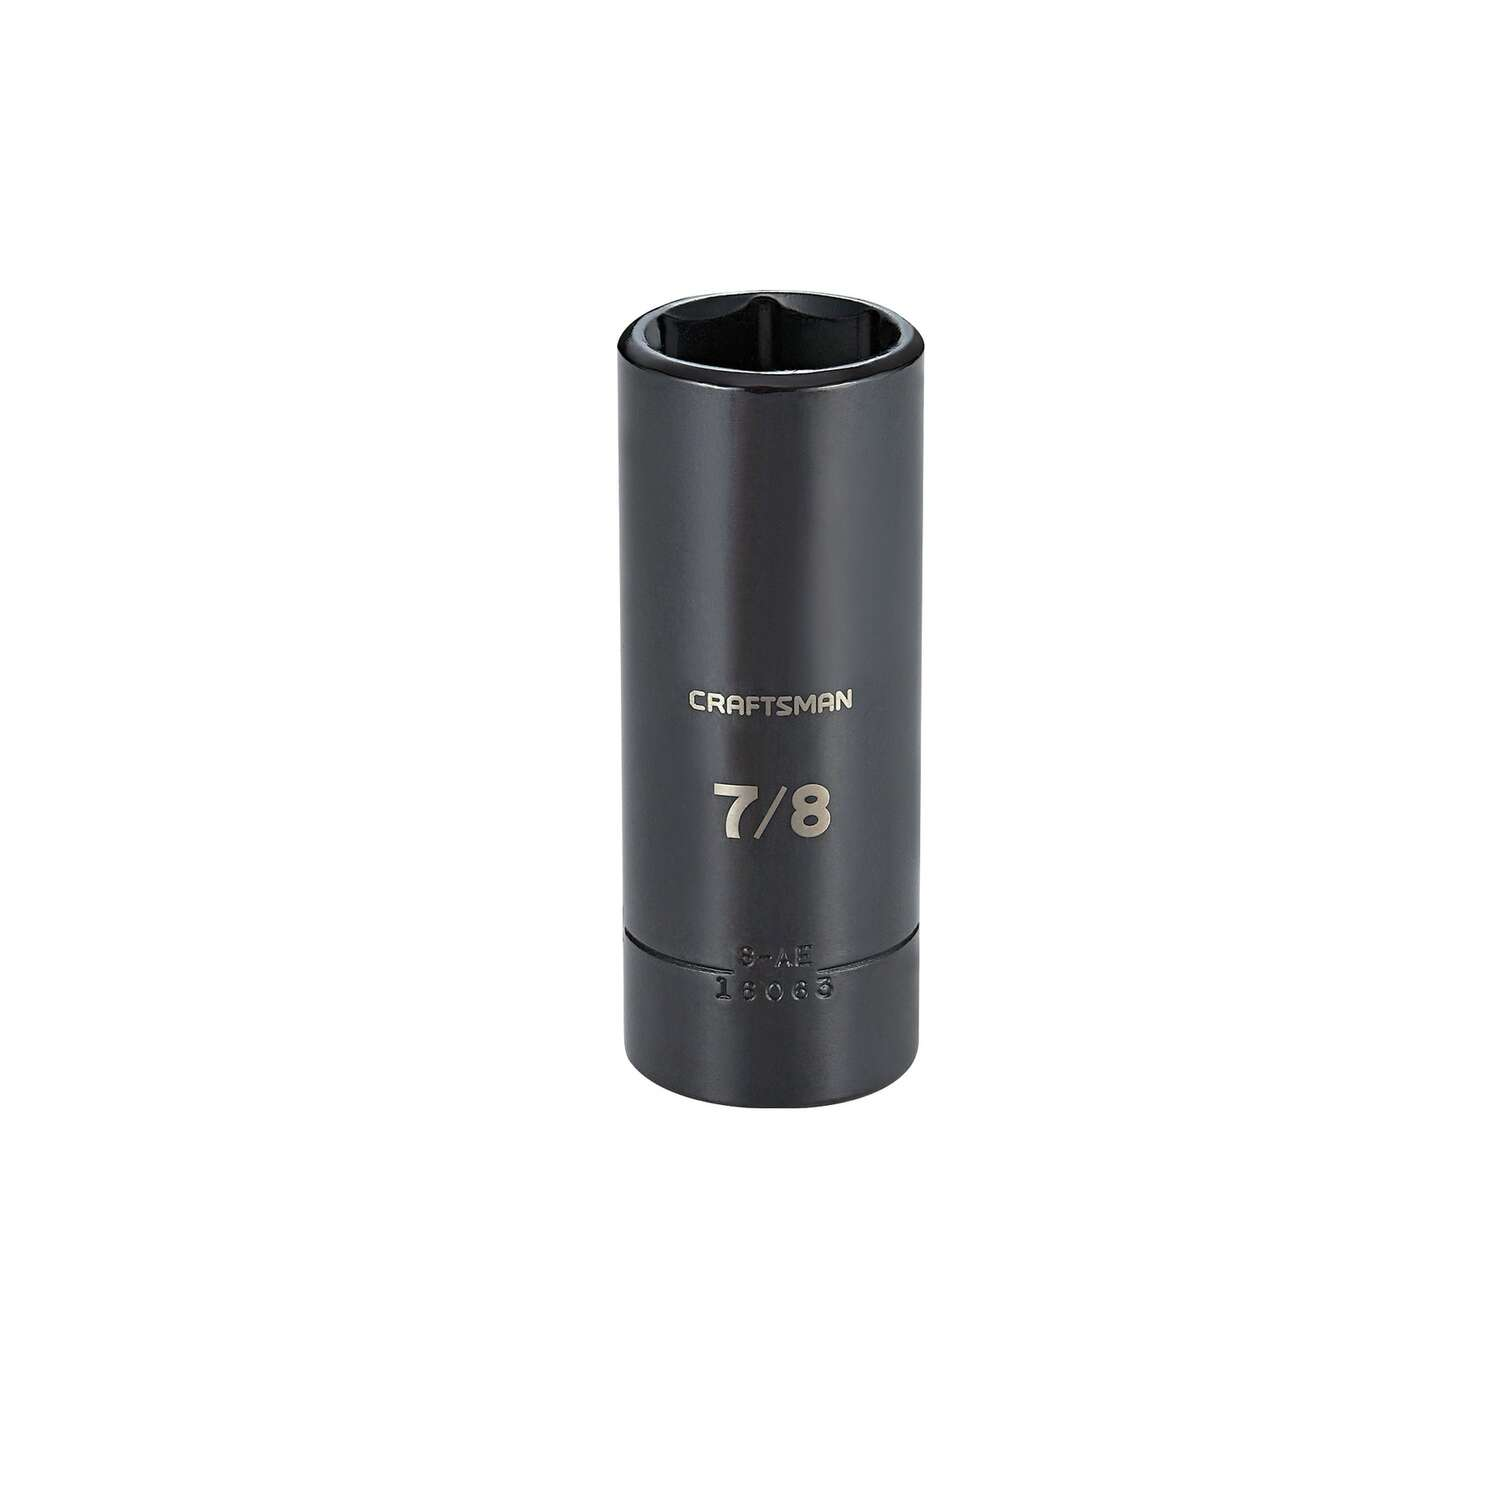 Craftsman 7/8 in. x 1/2 in. drive SAE 6 Point Deep Deep Impact Socket 1 pc.